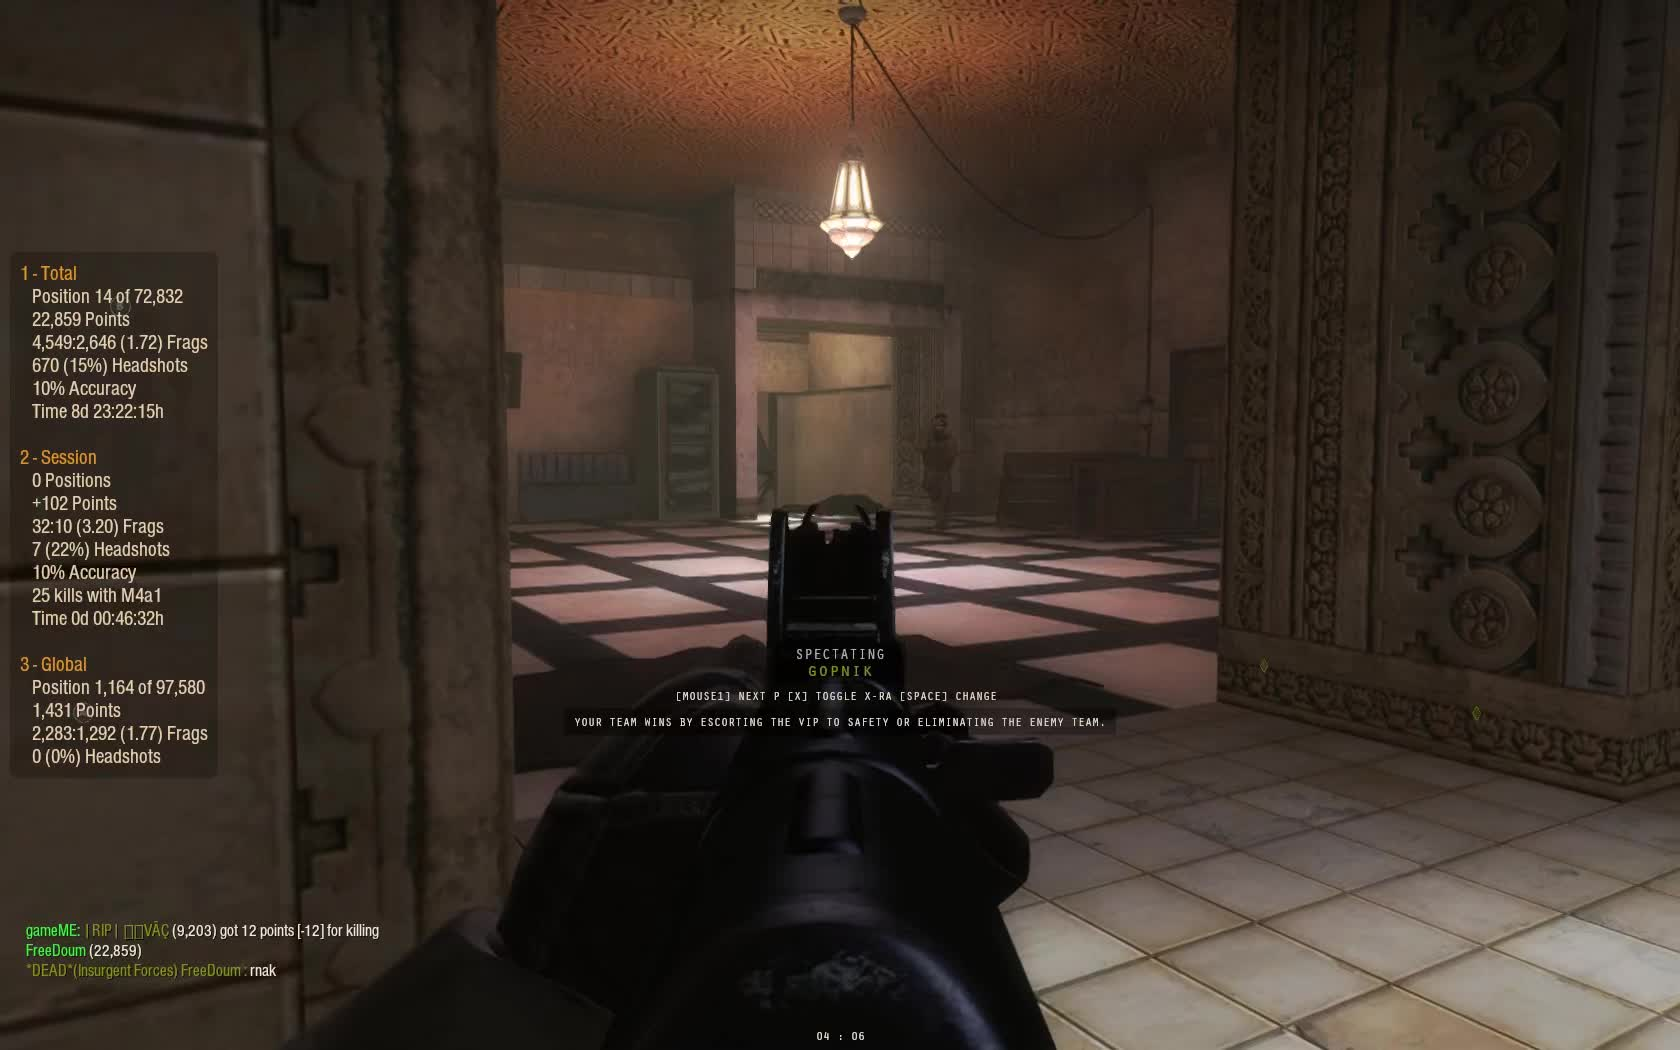 insurgency, Life was just too much to bear GIFs